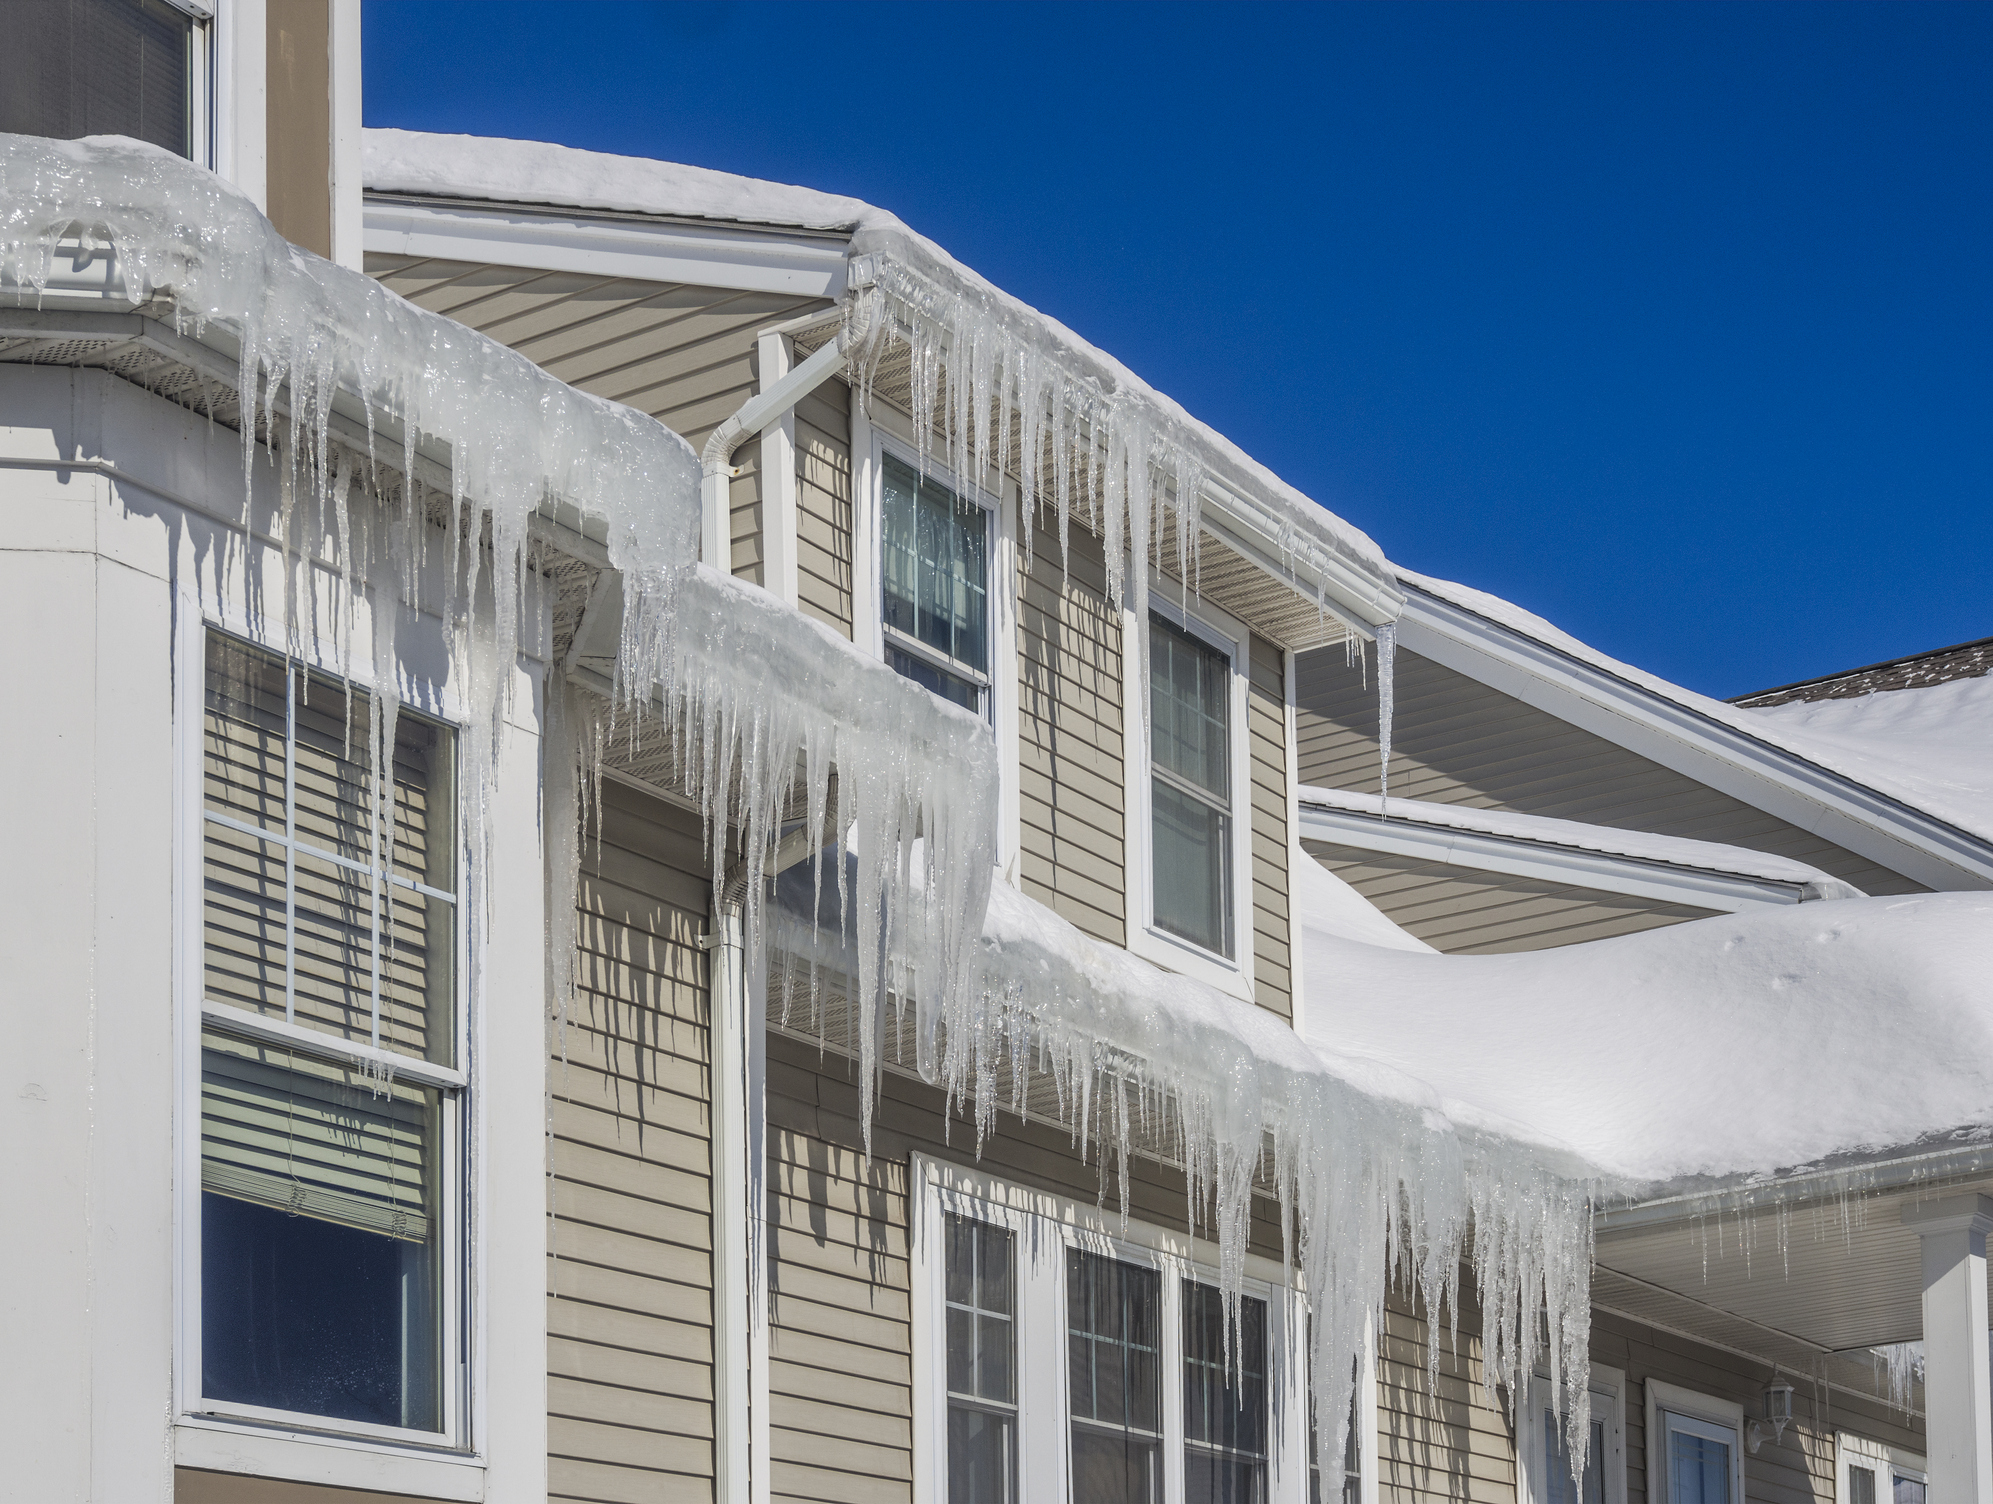 Ice dams on large home